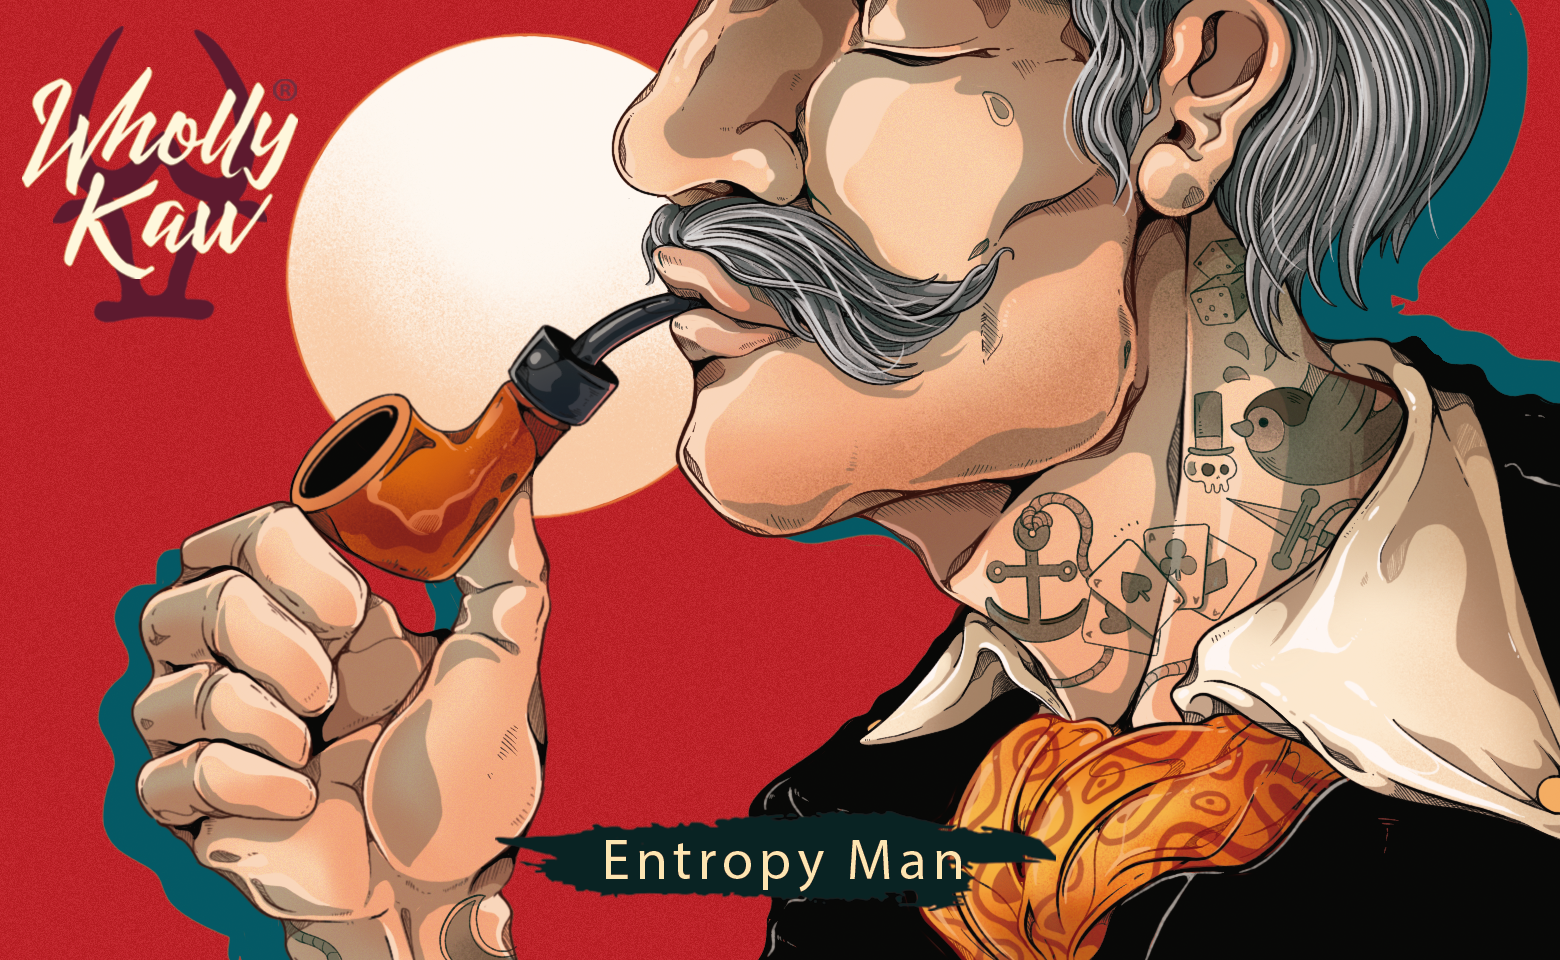 Wholly Kaw - Entropy Man - Balm image